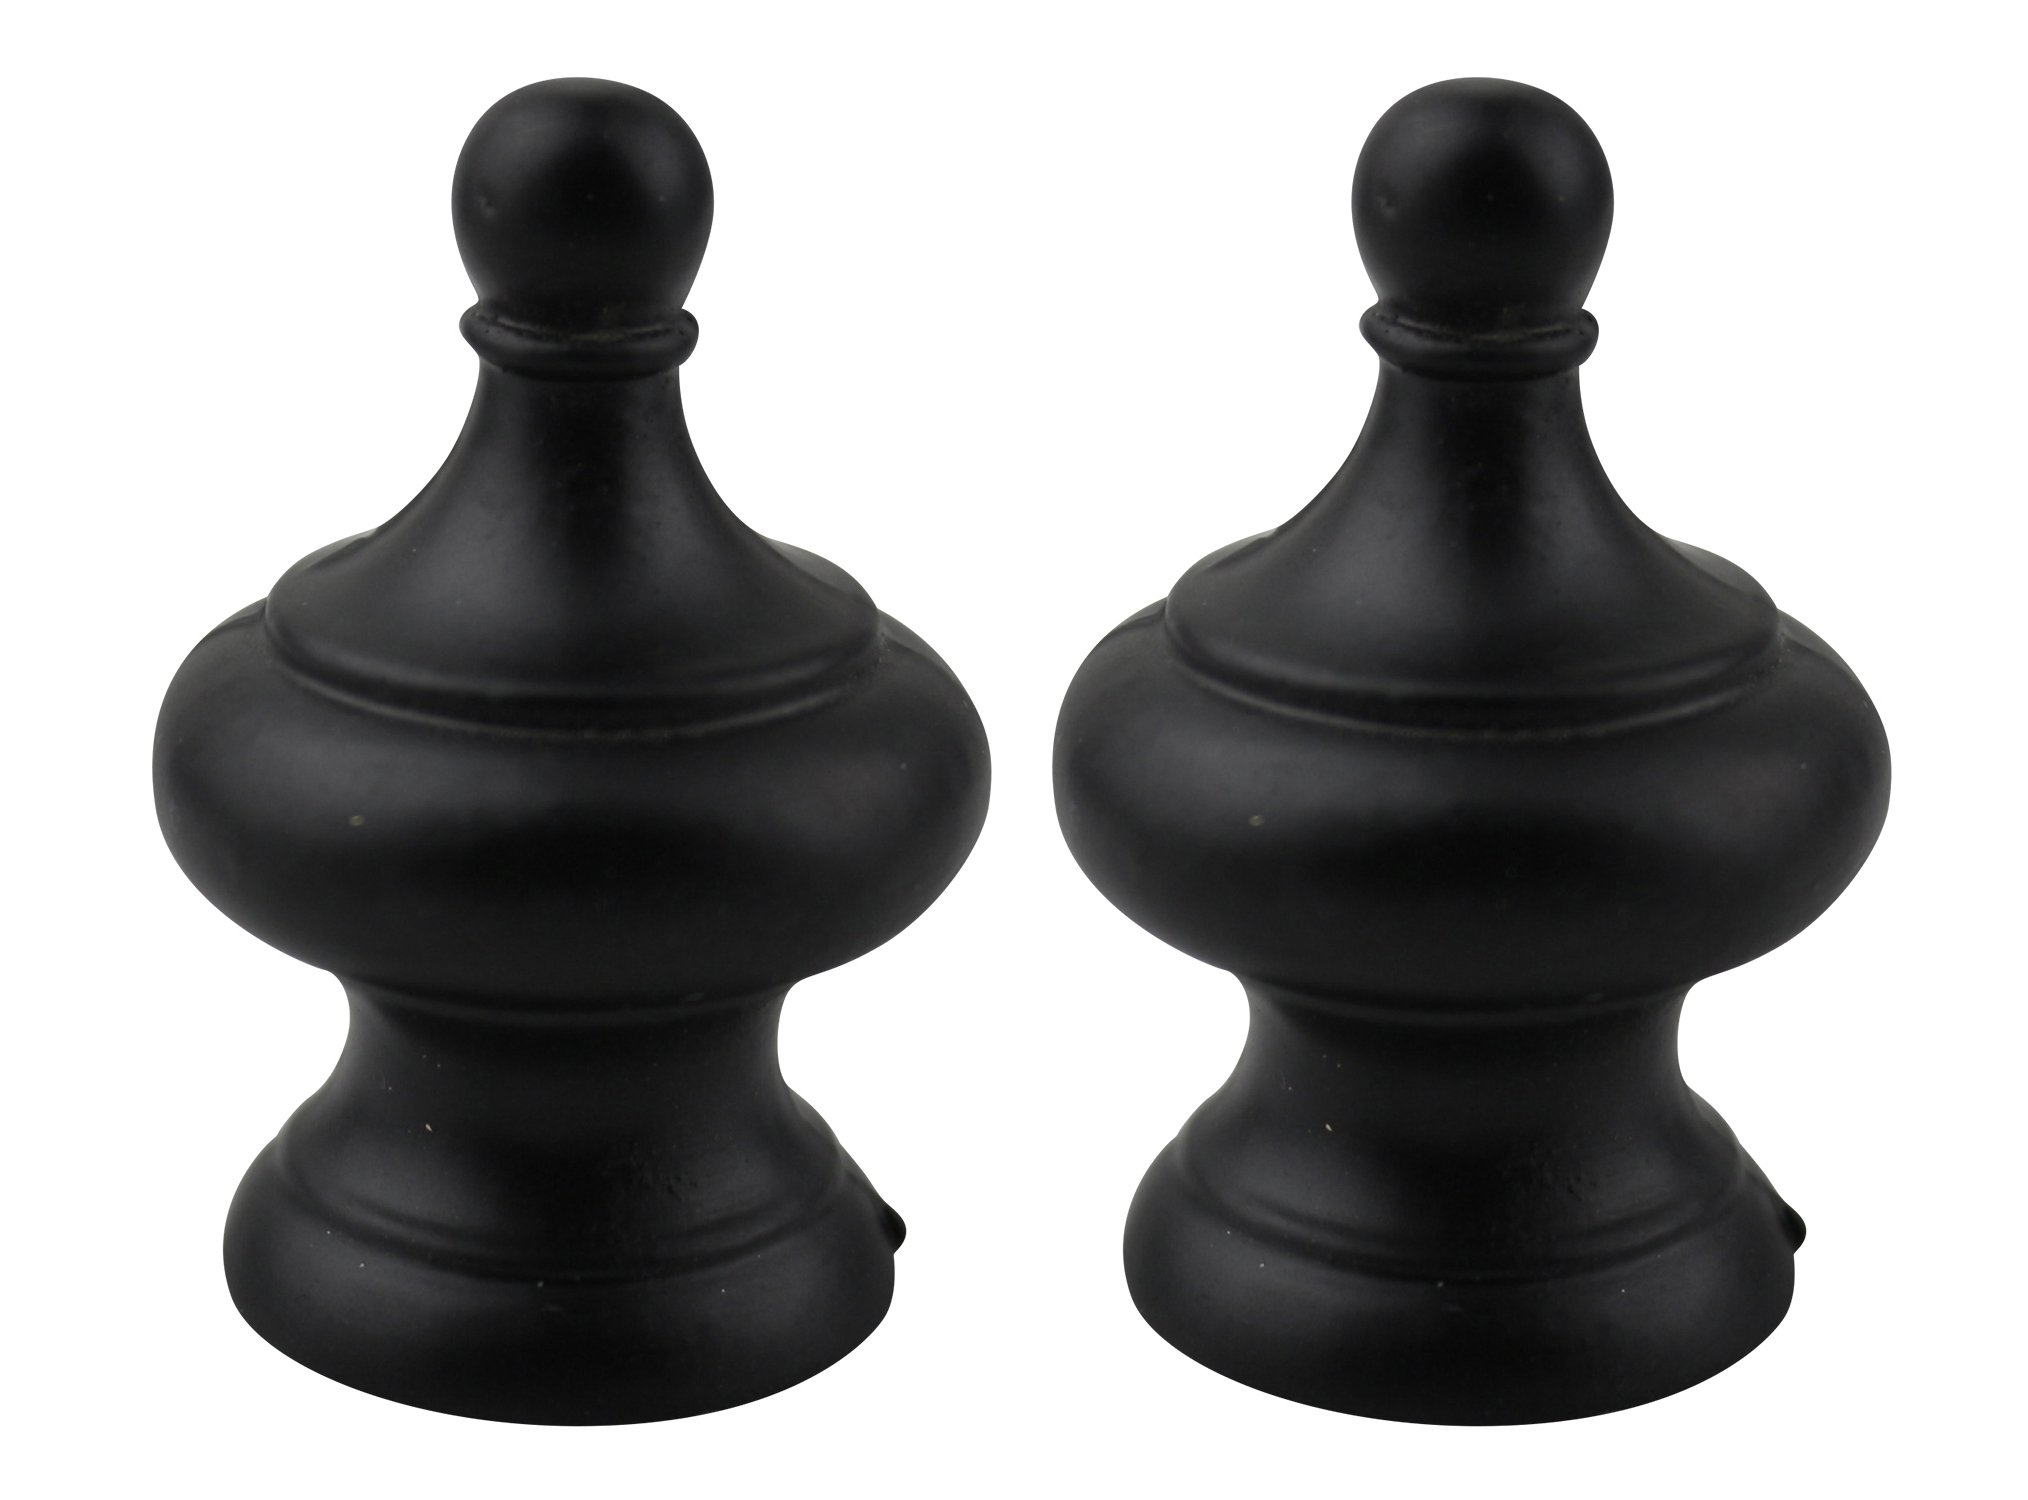 Urbanest Set of 2 Worsley Lamp Finial, 1 3/4-inch Tall, Matte Black by Urbanest